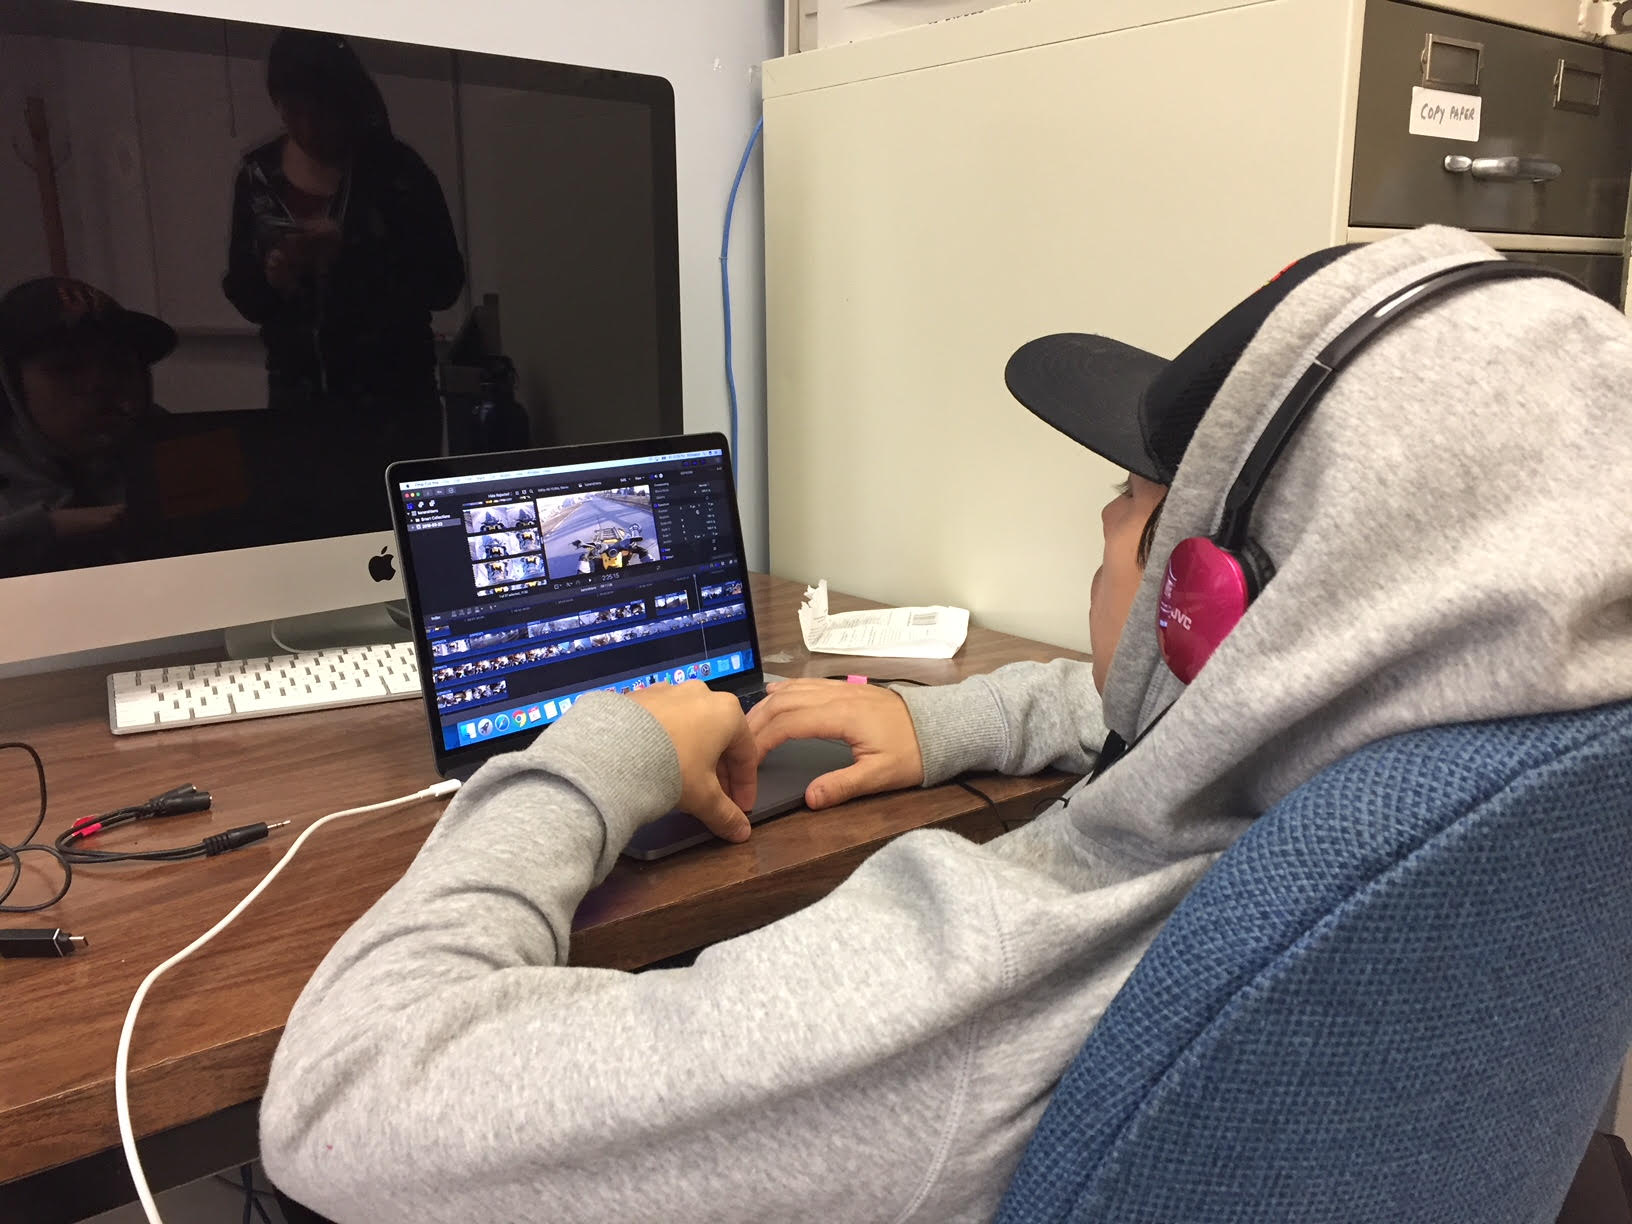 Kanerahtens is really confident working on Final Cut X